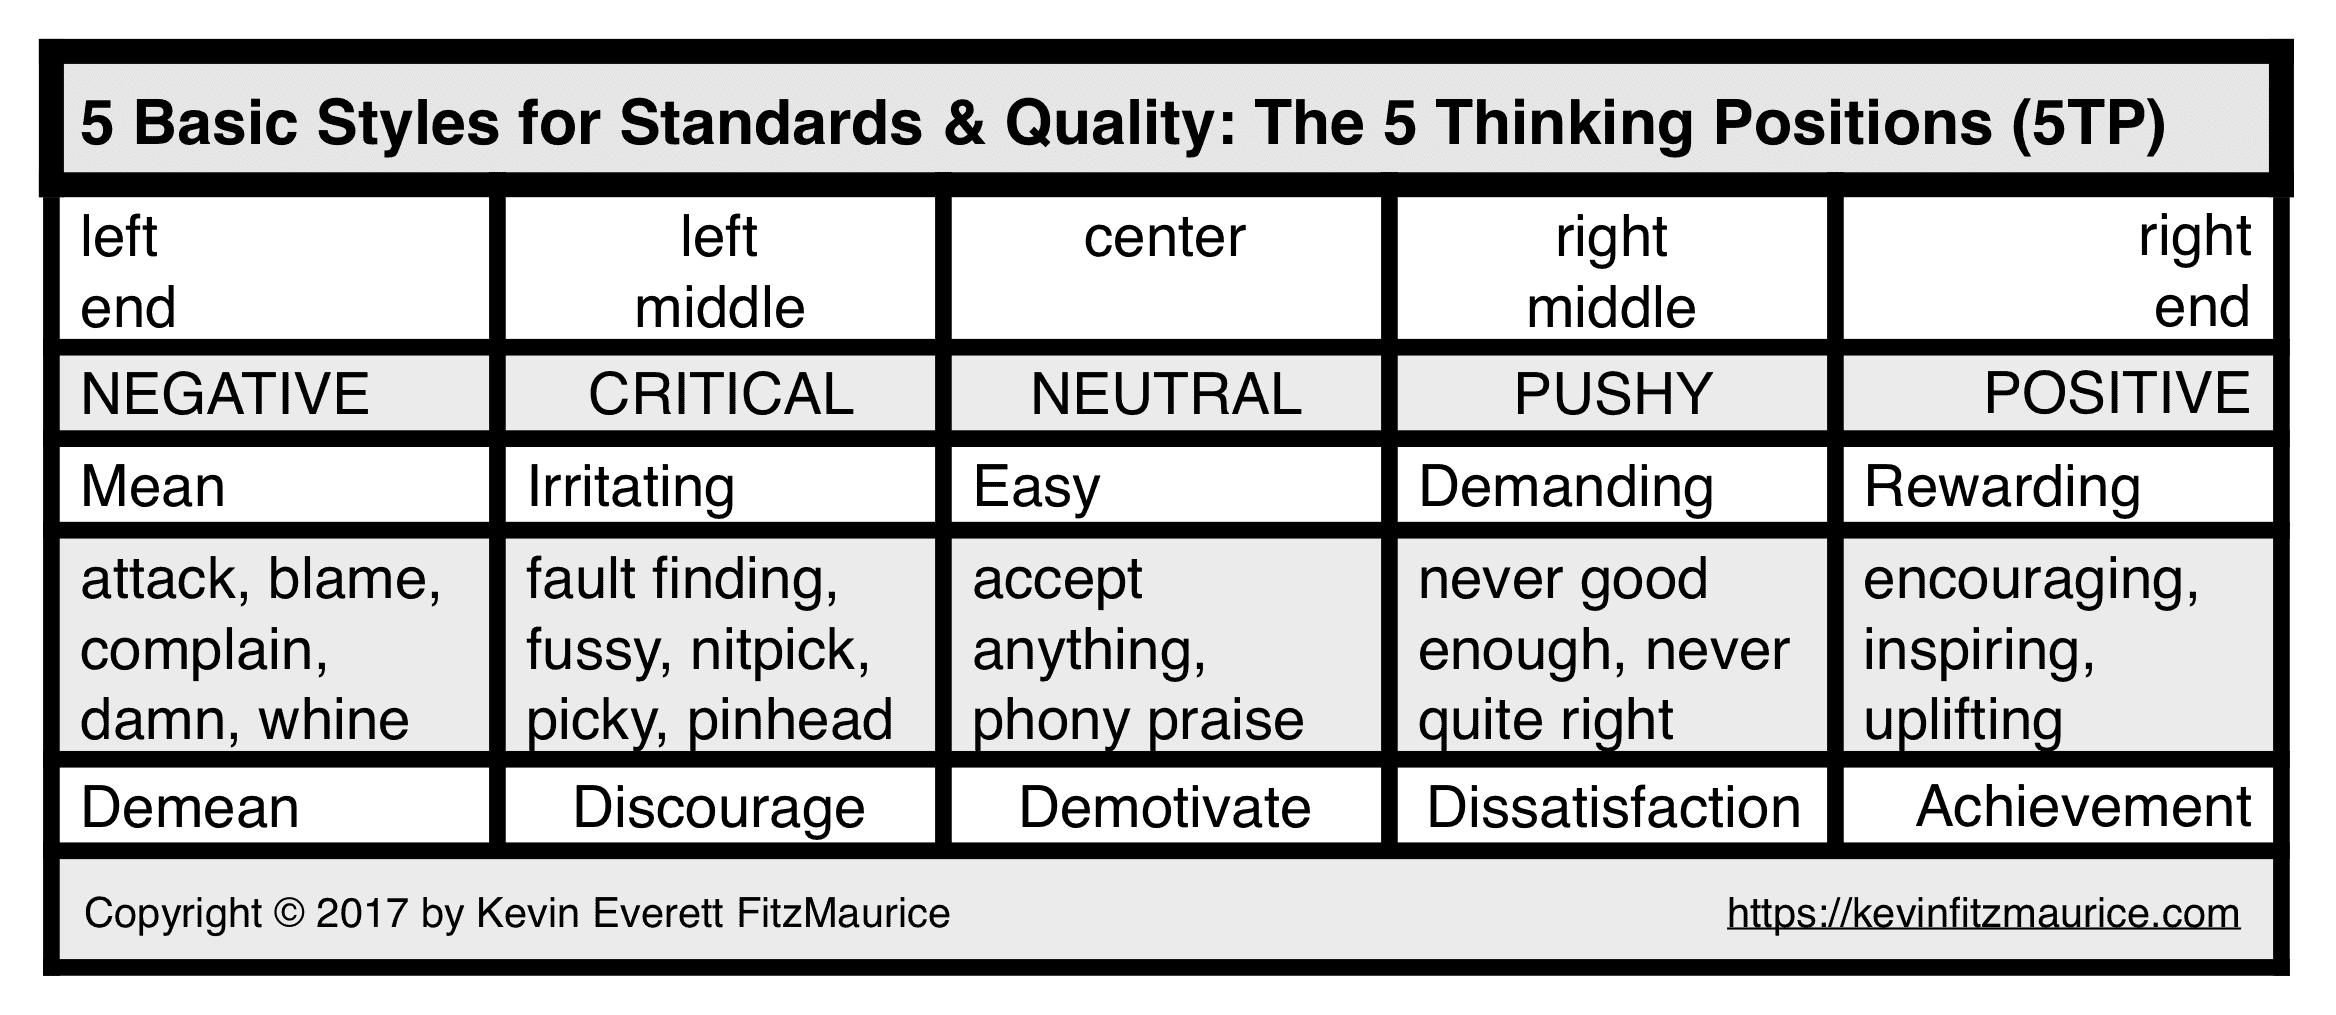 5 Styles for Standards & Quality